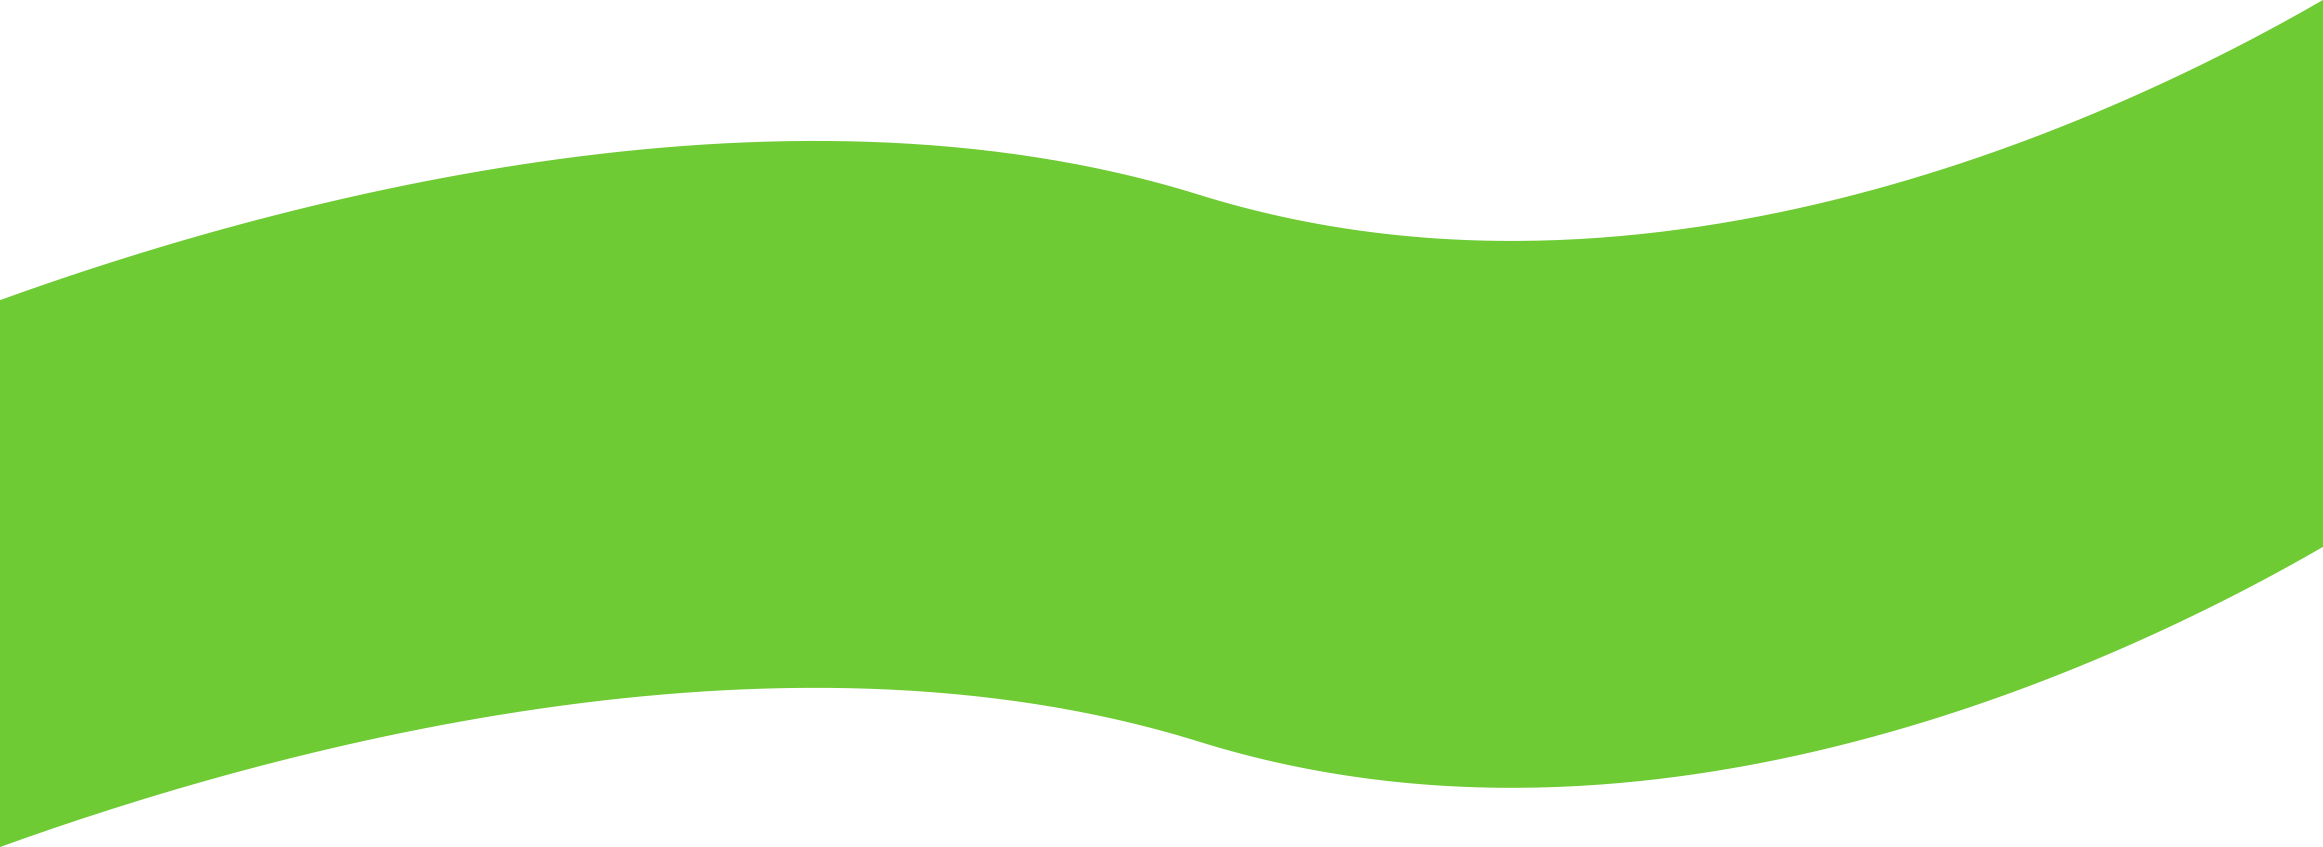 wave_green.png